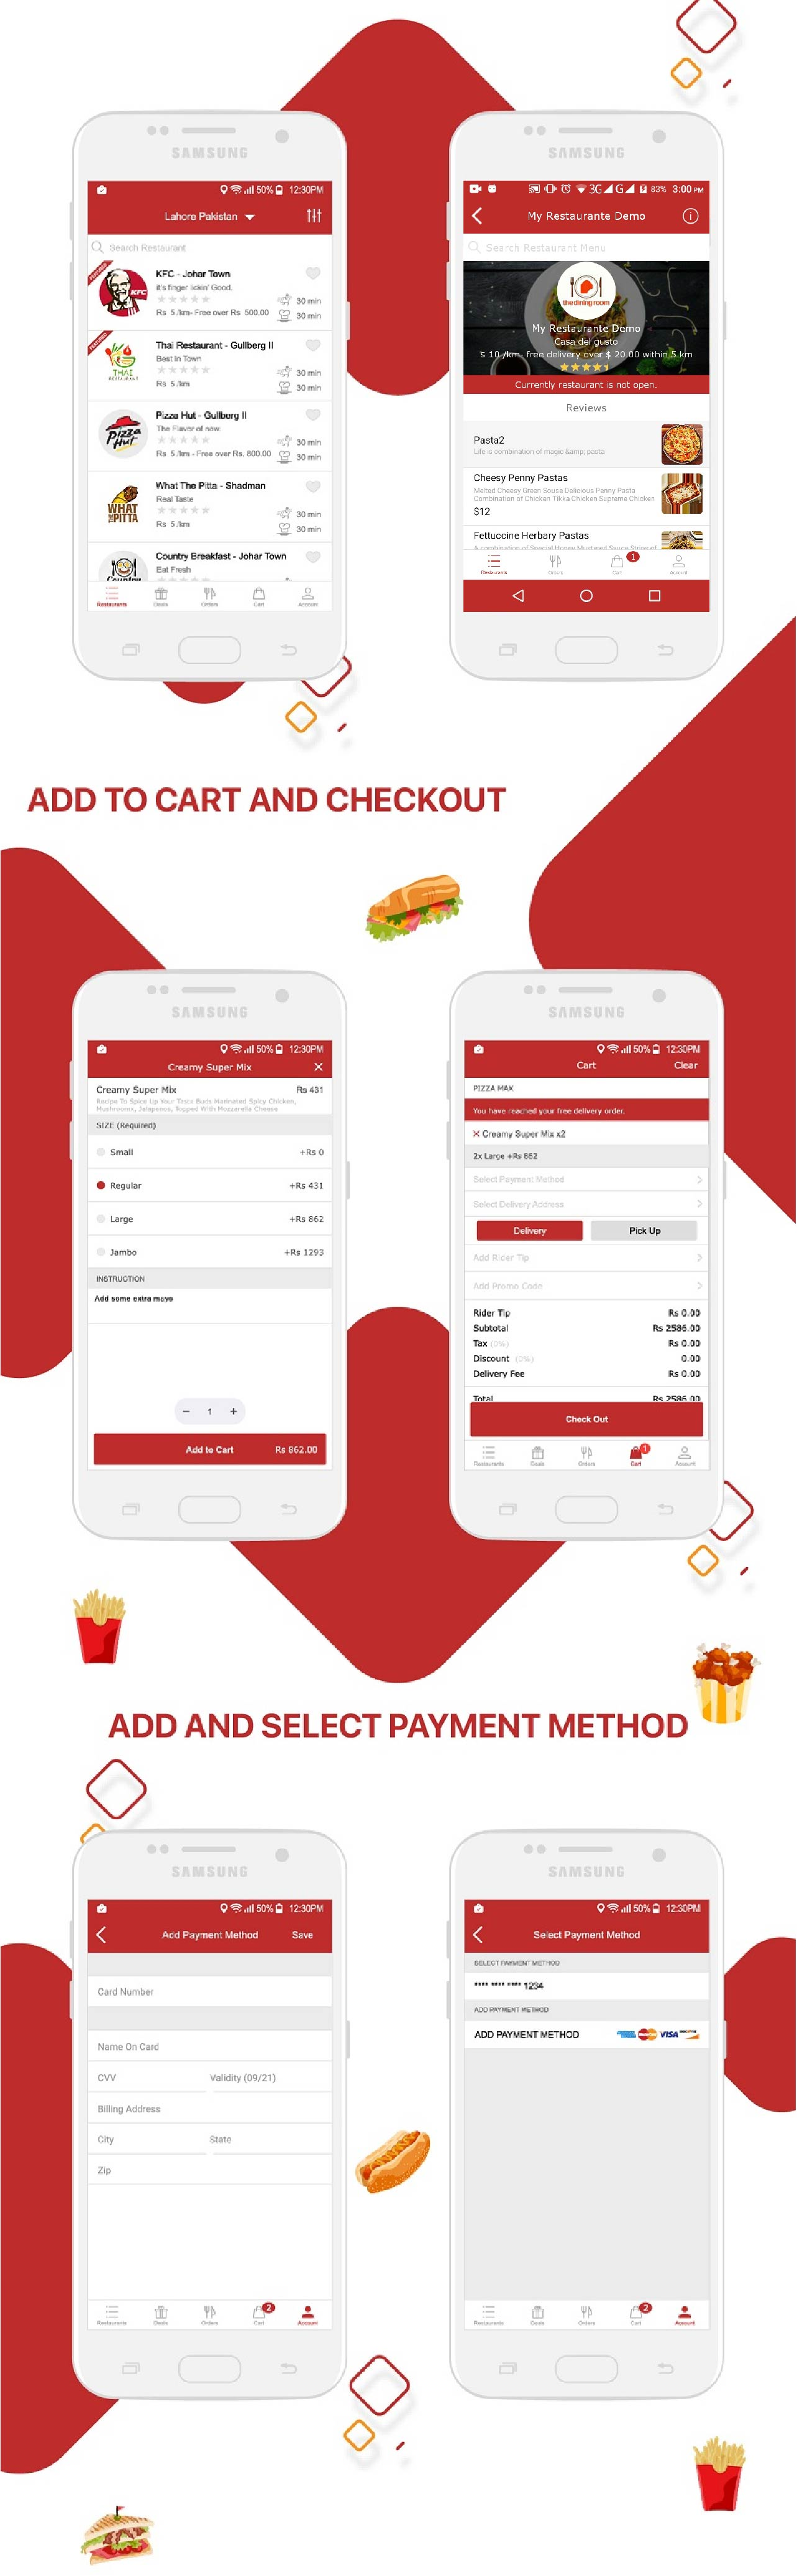 Native Restaurant Food Delivery & Ordering System With Delivery Boy - Android v2.0.6 - 12